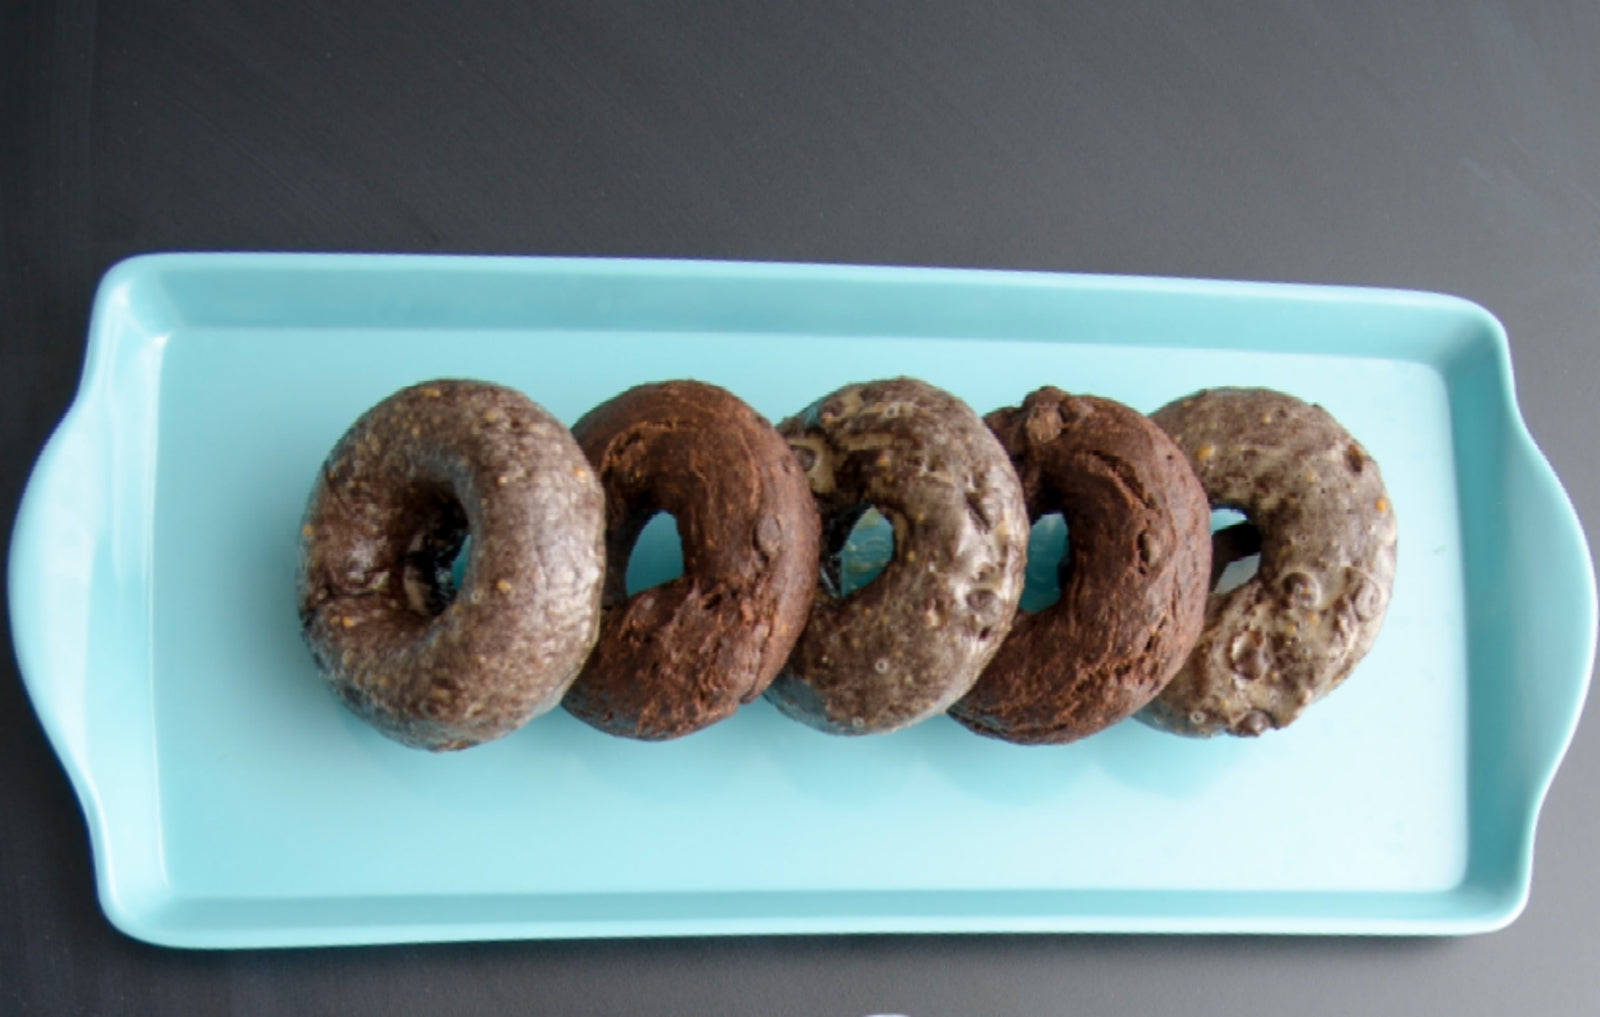 Glazed Chocolate Peanut Butter Donuts